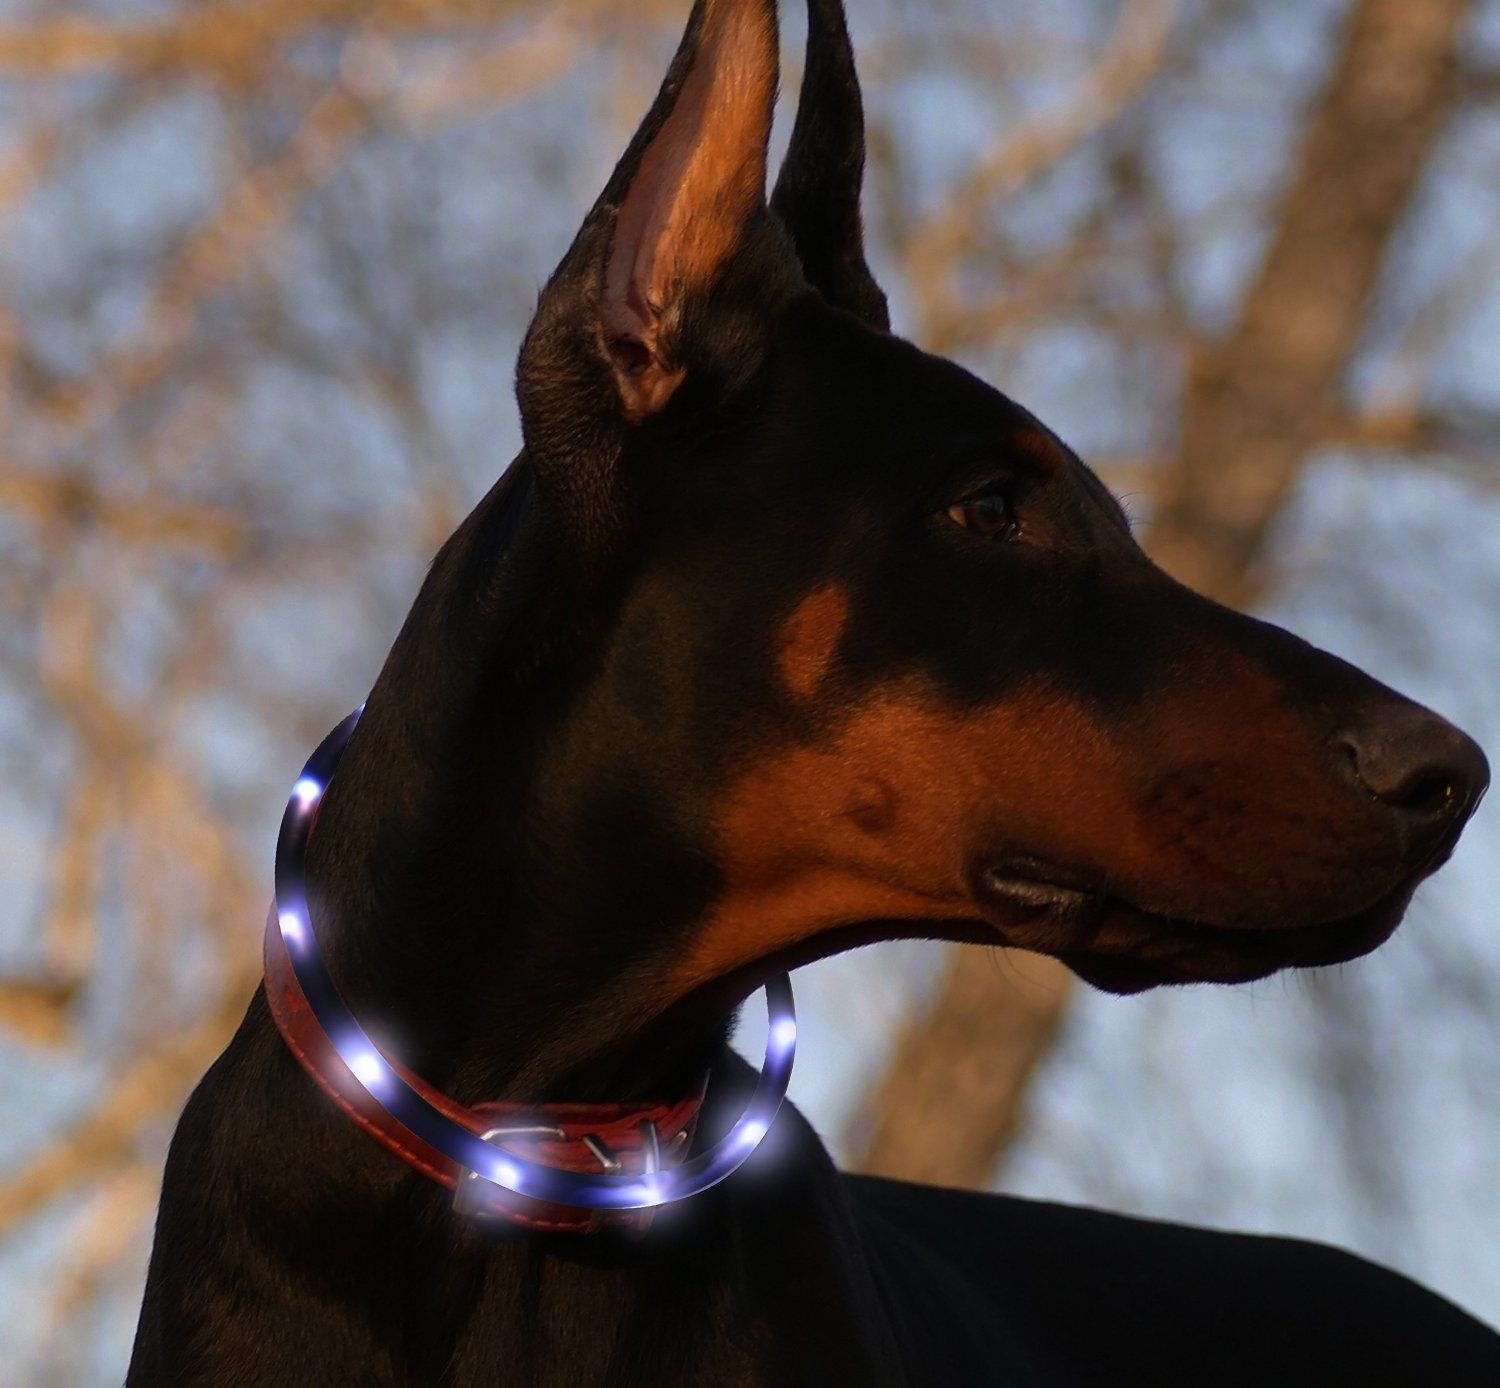 flashing loop dog led neck usb safety up adjustable yeshold blue light rechargeable collar waterproof pet necklace supplies